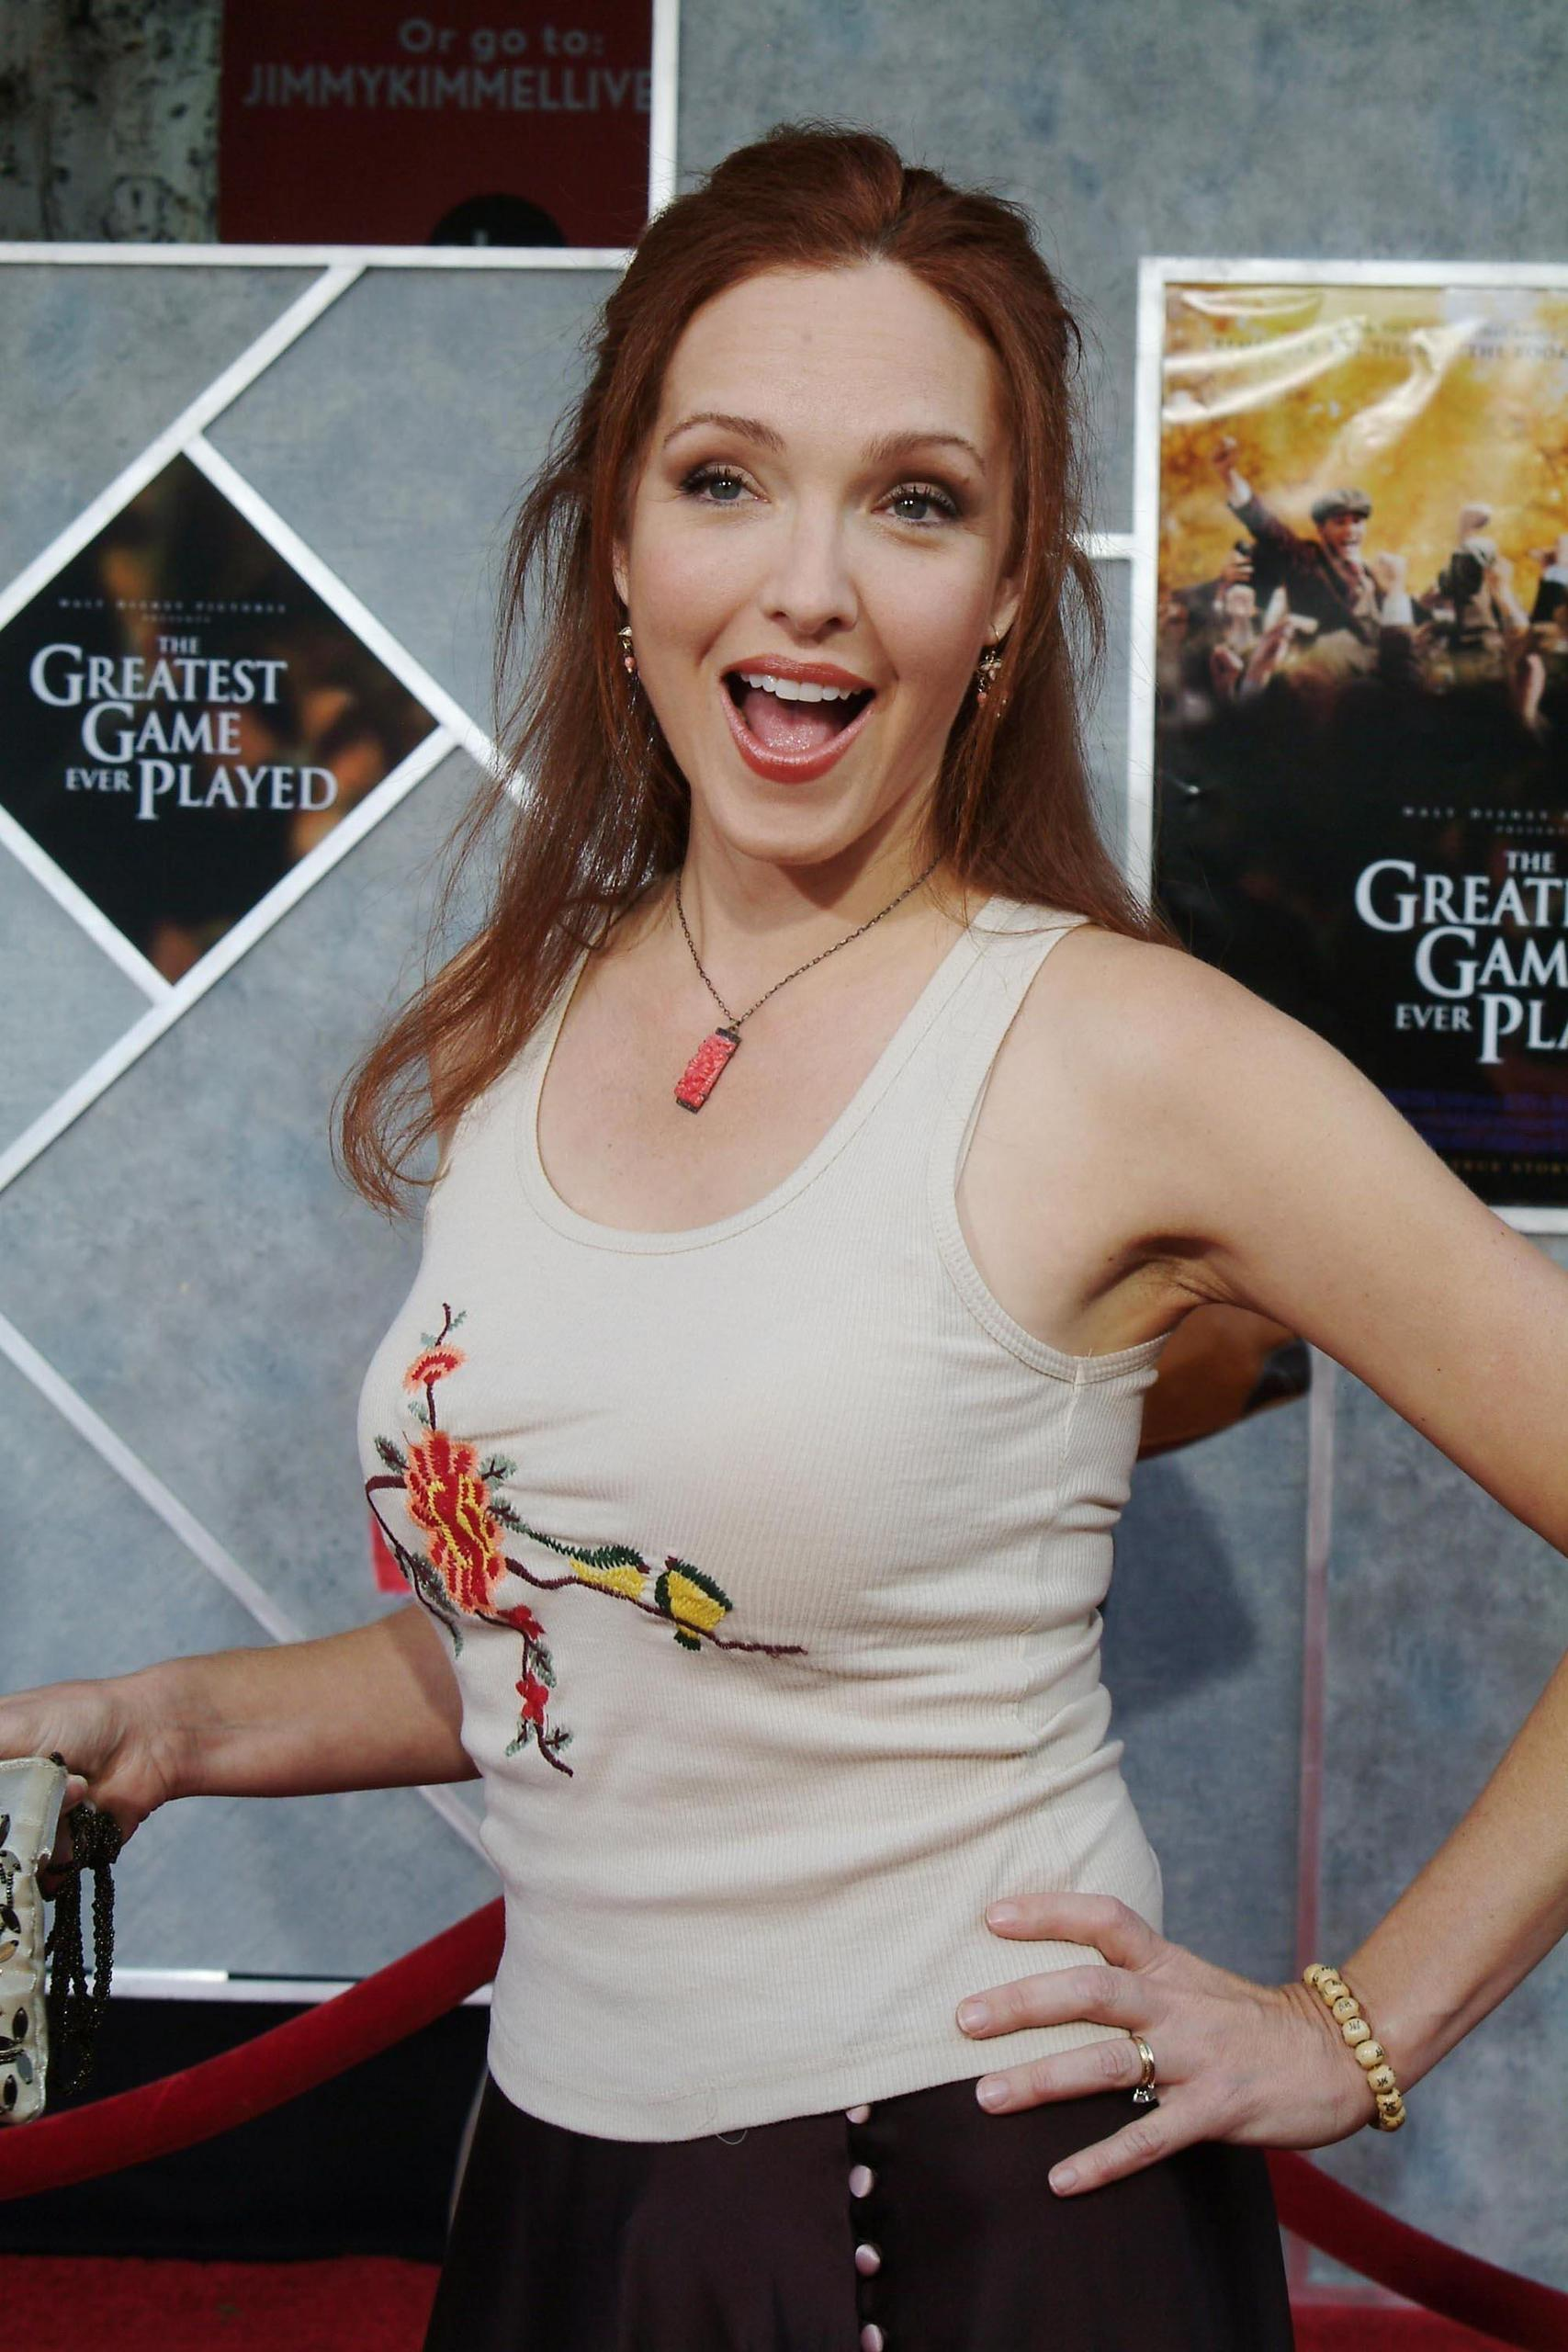 Amy Yasbeck premiere of the greatest game ever played - amy yasbeck